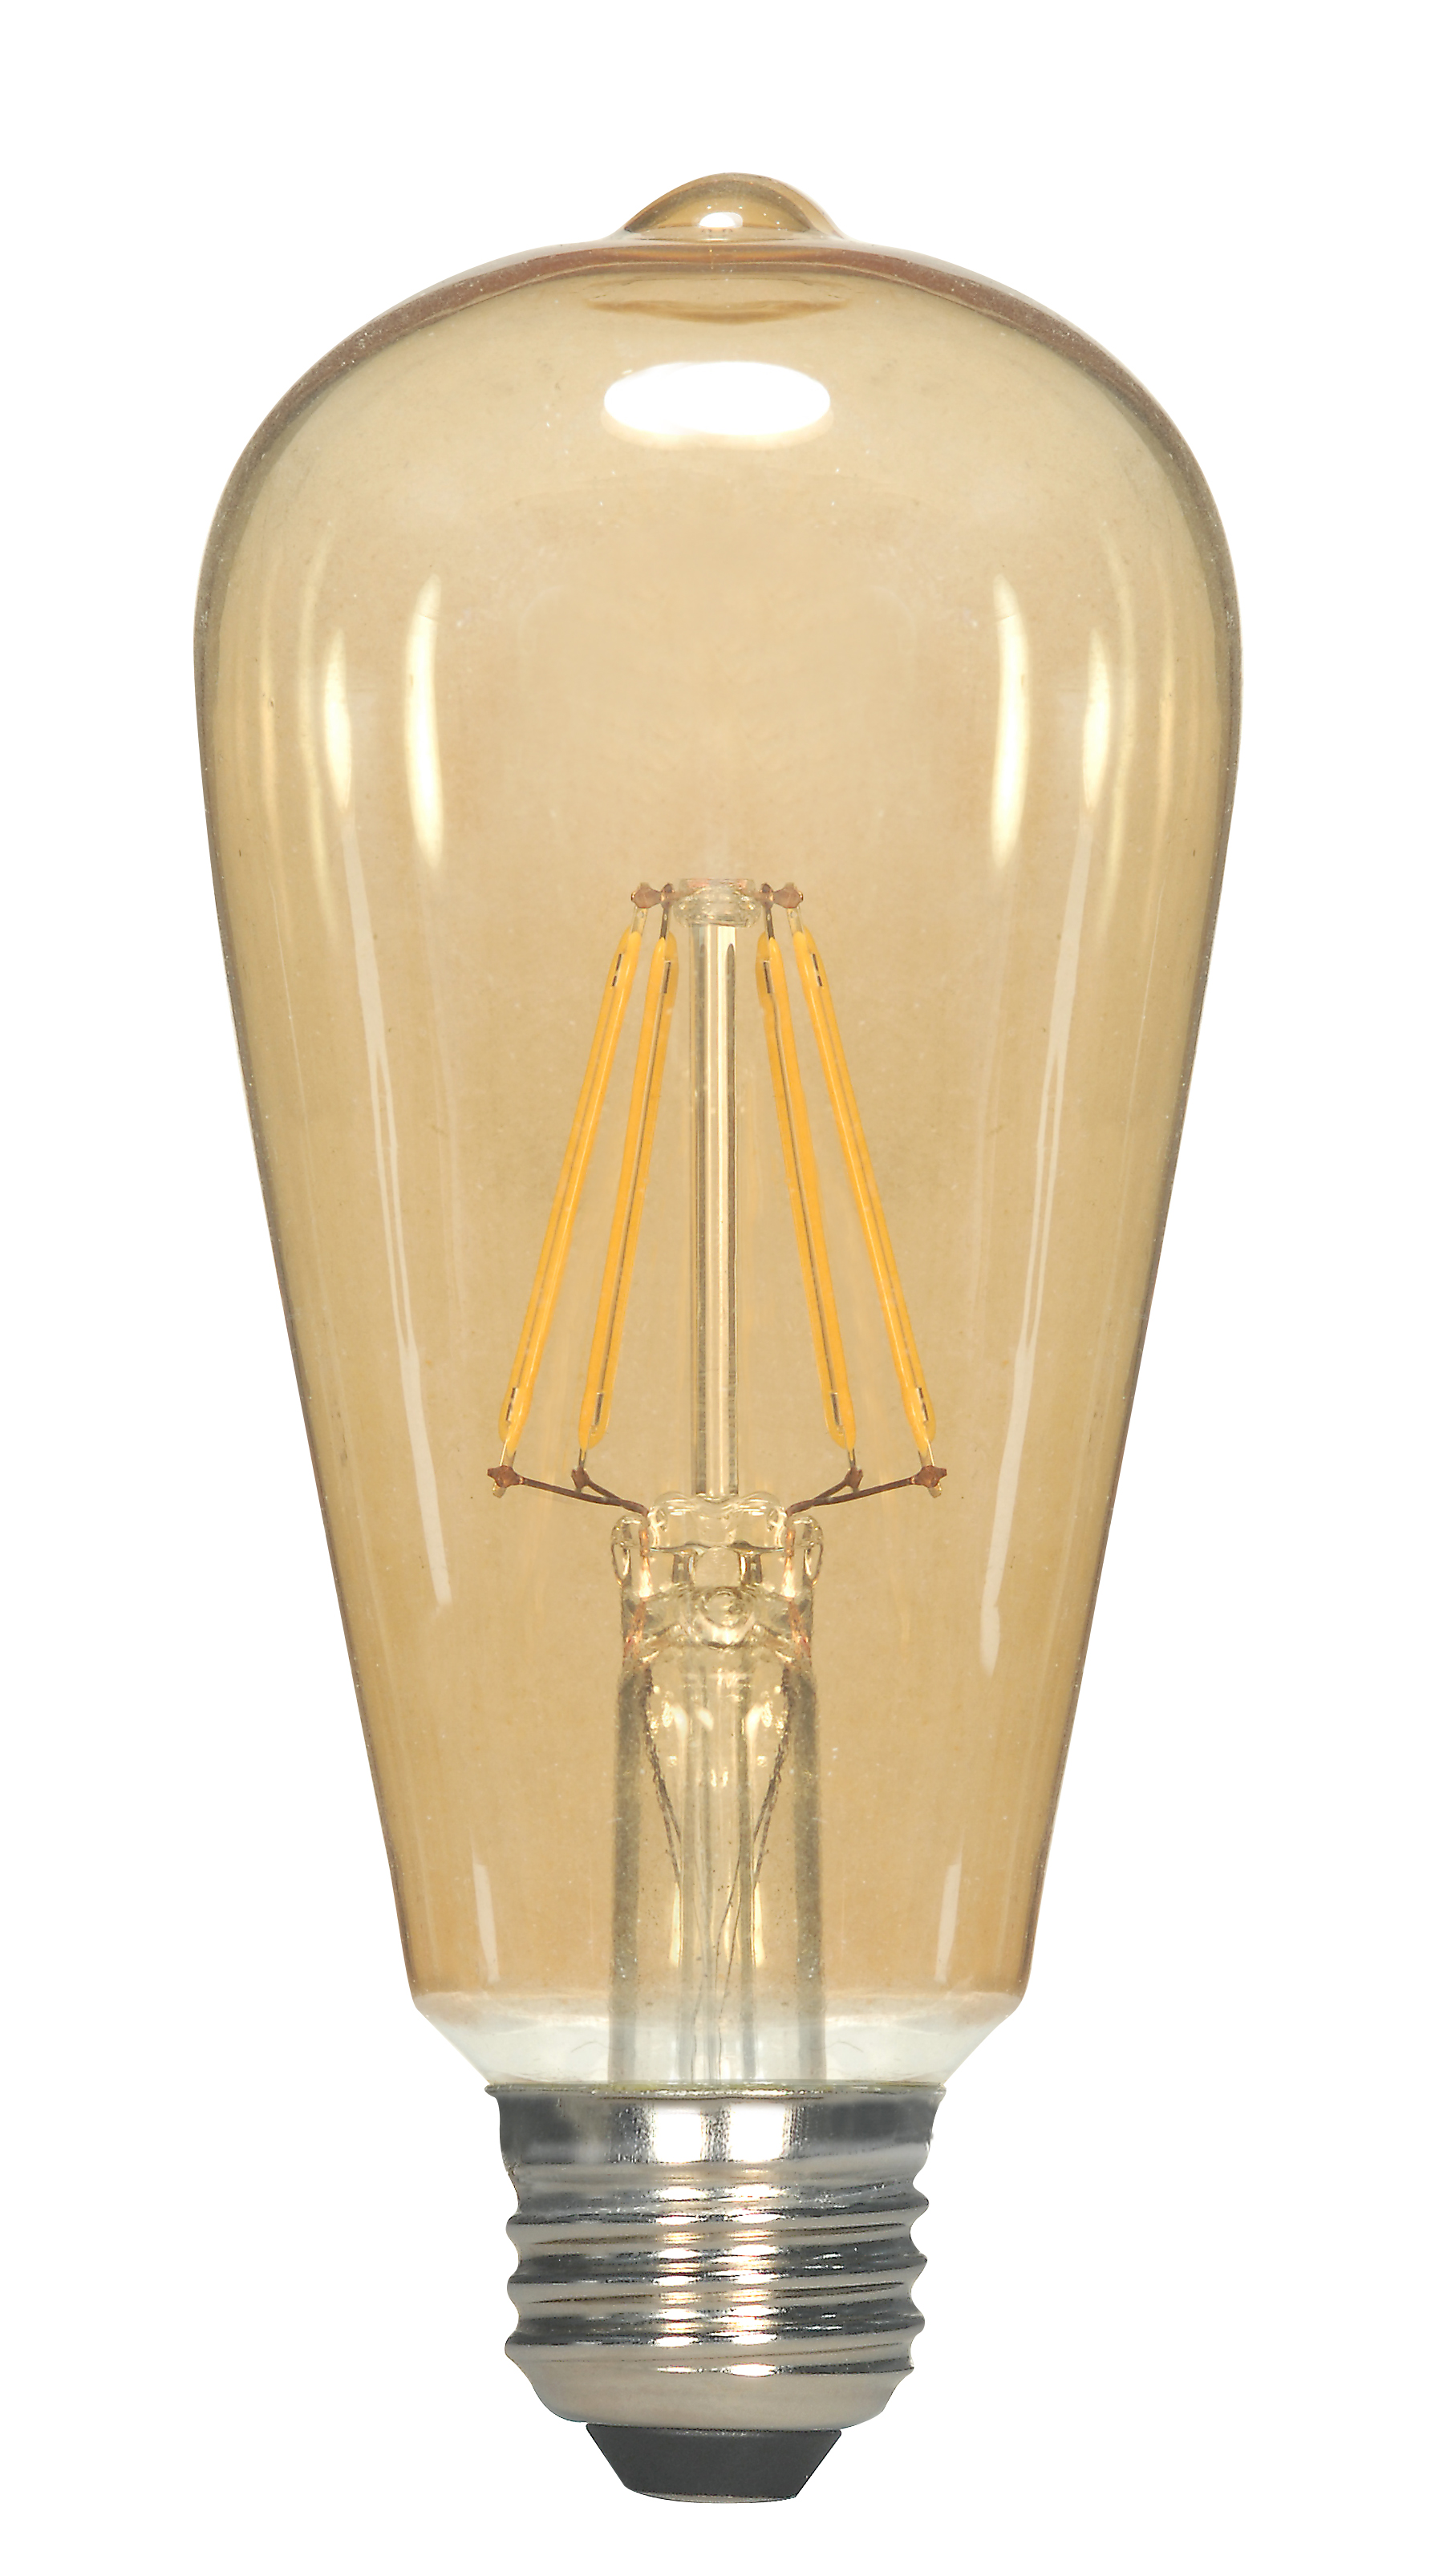 Satco,S9579,NUVO® by SATCO S9579 Dimmable LED Lamp, 6.5 W, LED Lamp, Medium E26 Lamp Base, ST19 Shape, 650 Lumens Initial